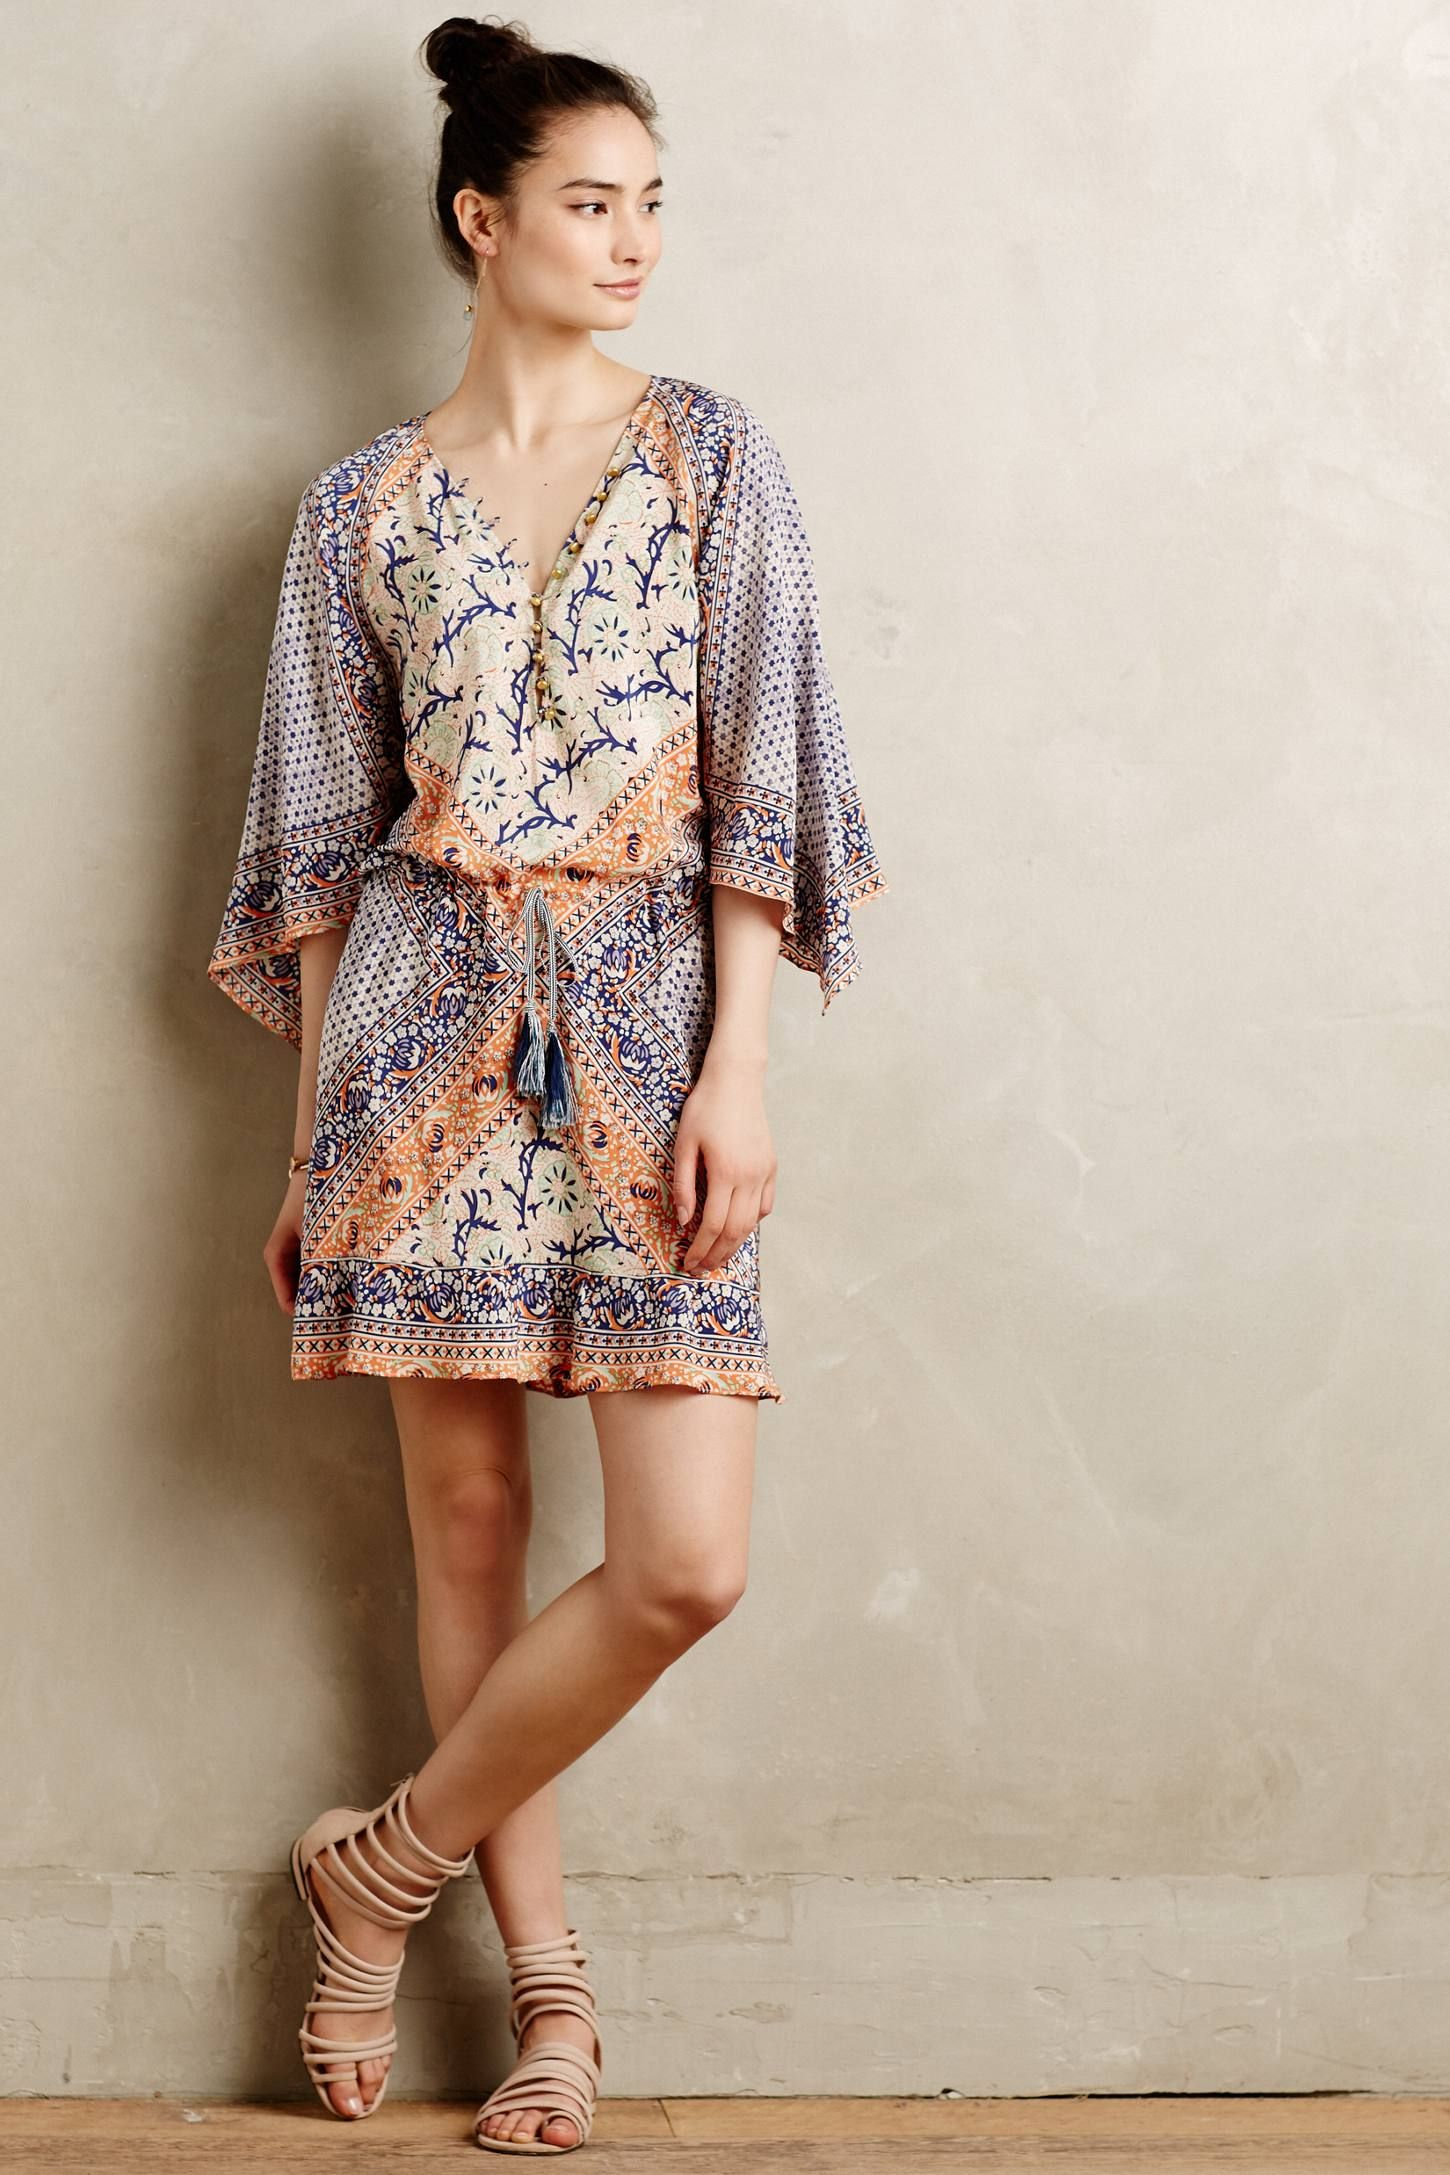 Elysium silk dress anthropologie this looks incredibly comfy